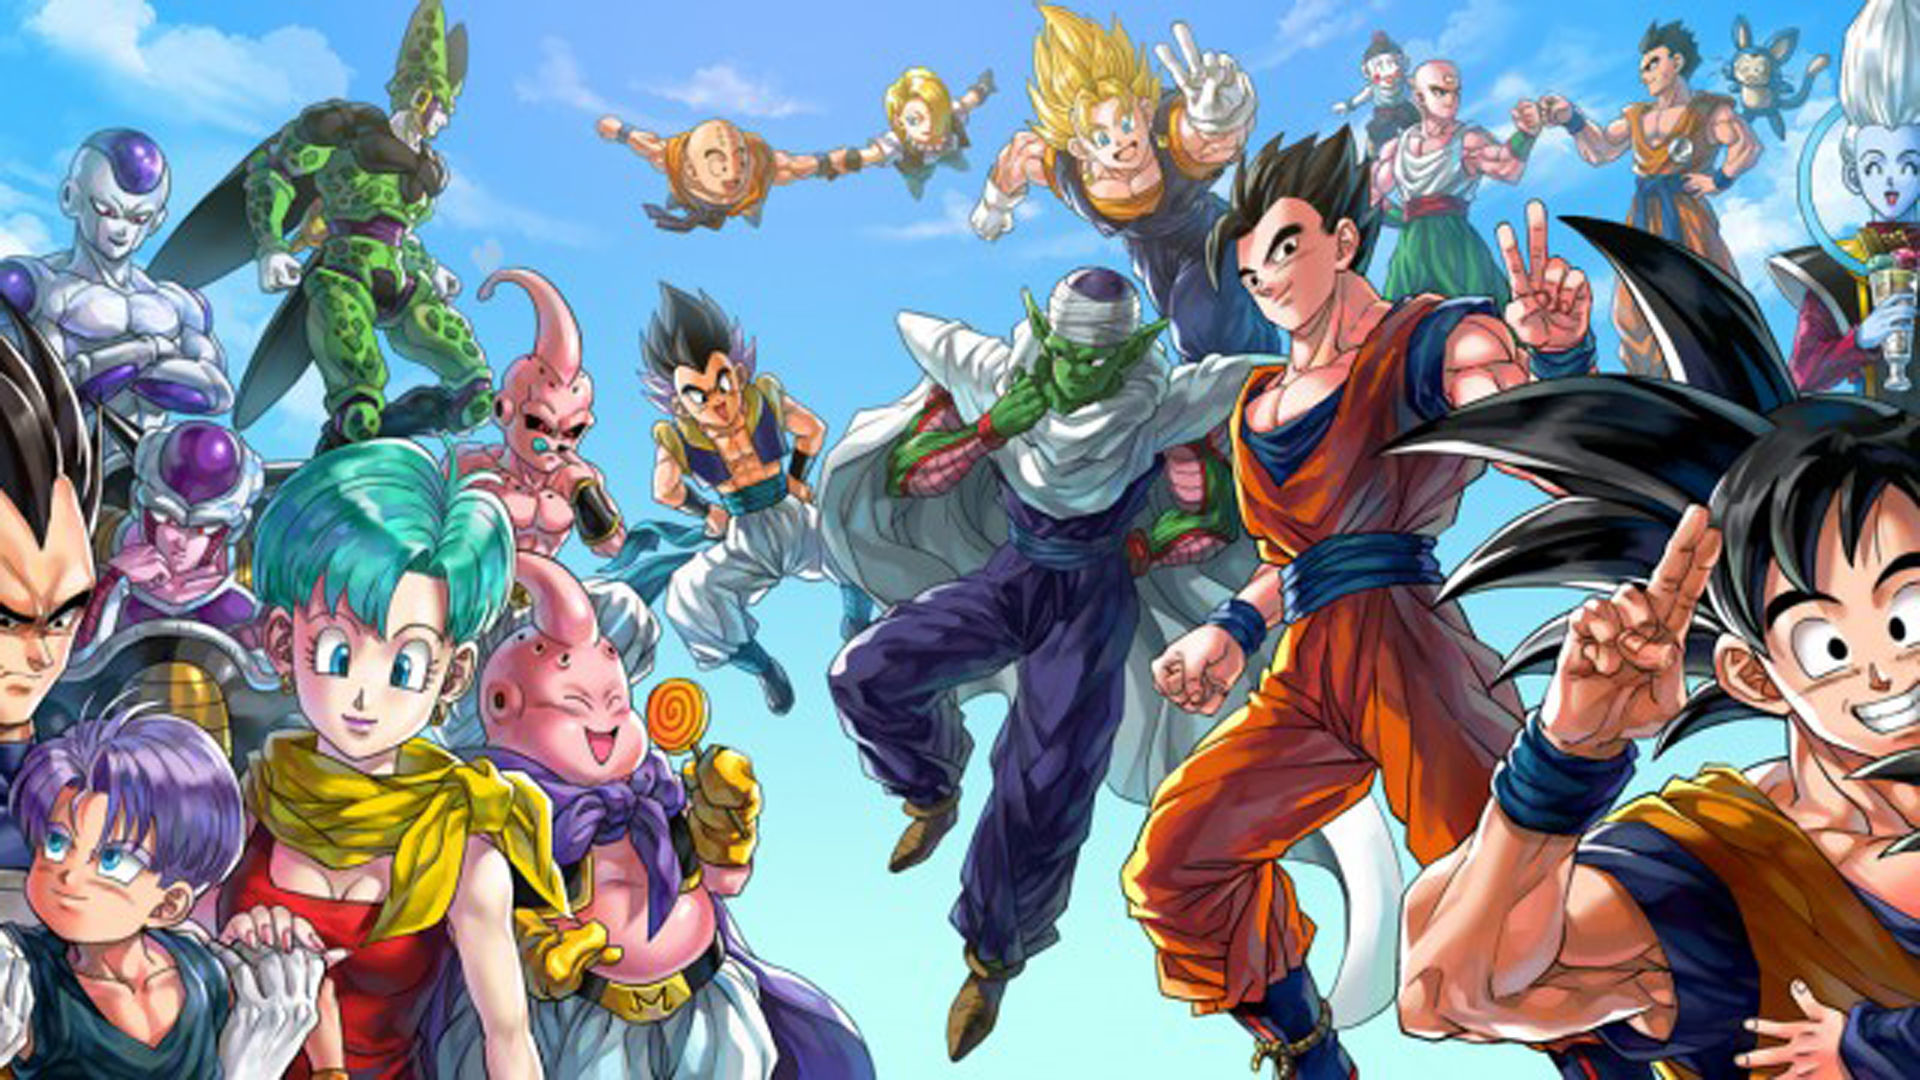 1920x1080 Awesome Dragon Ball Z Backgrounds